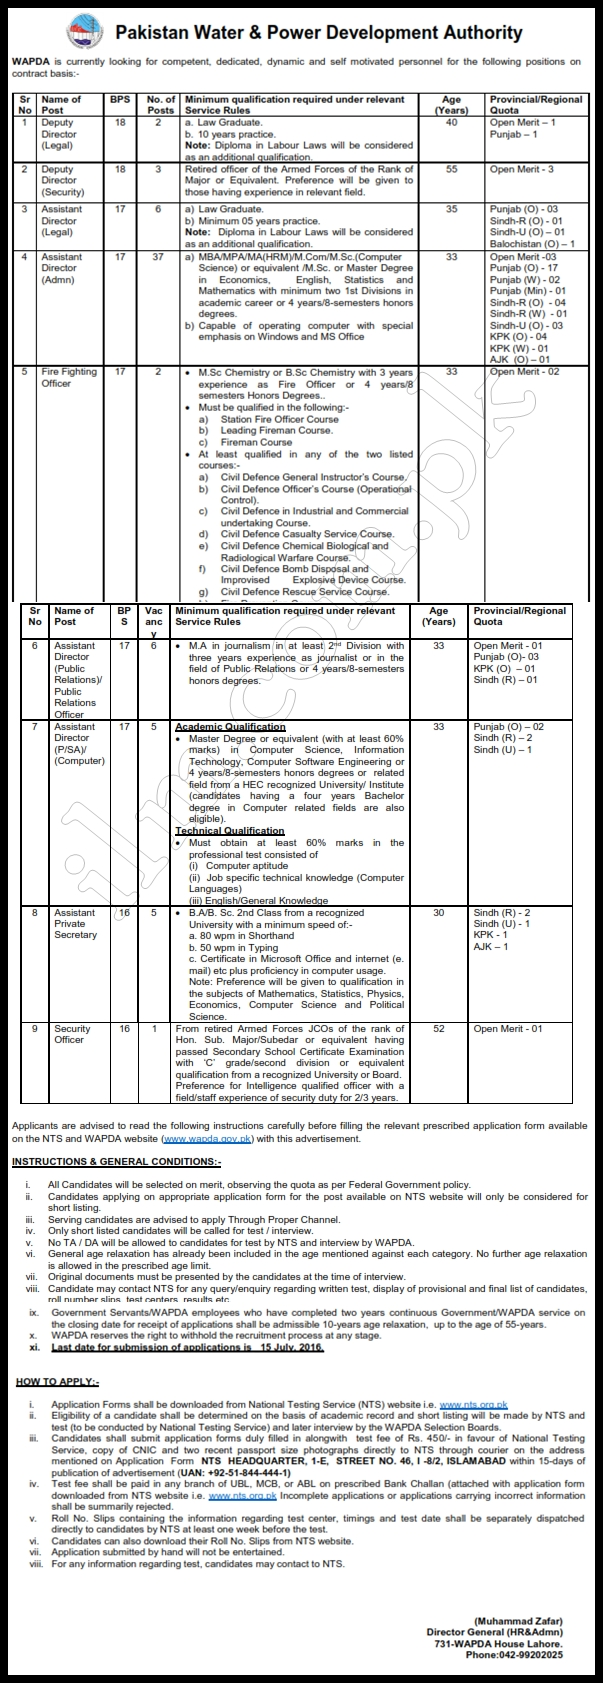 assistant director jobs 2016 nts application form last date wapda assistant director jobs 2016 nts application form last date